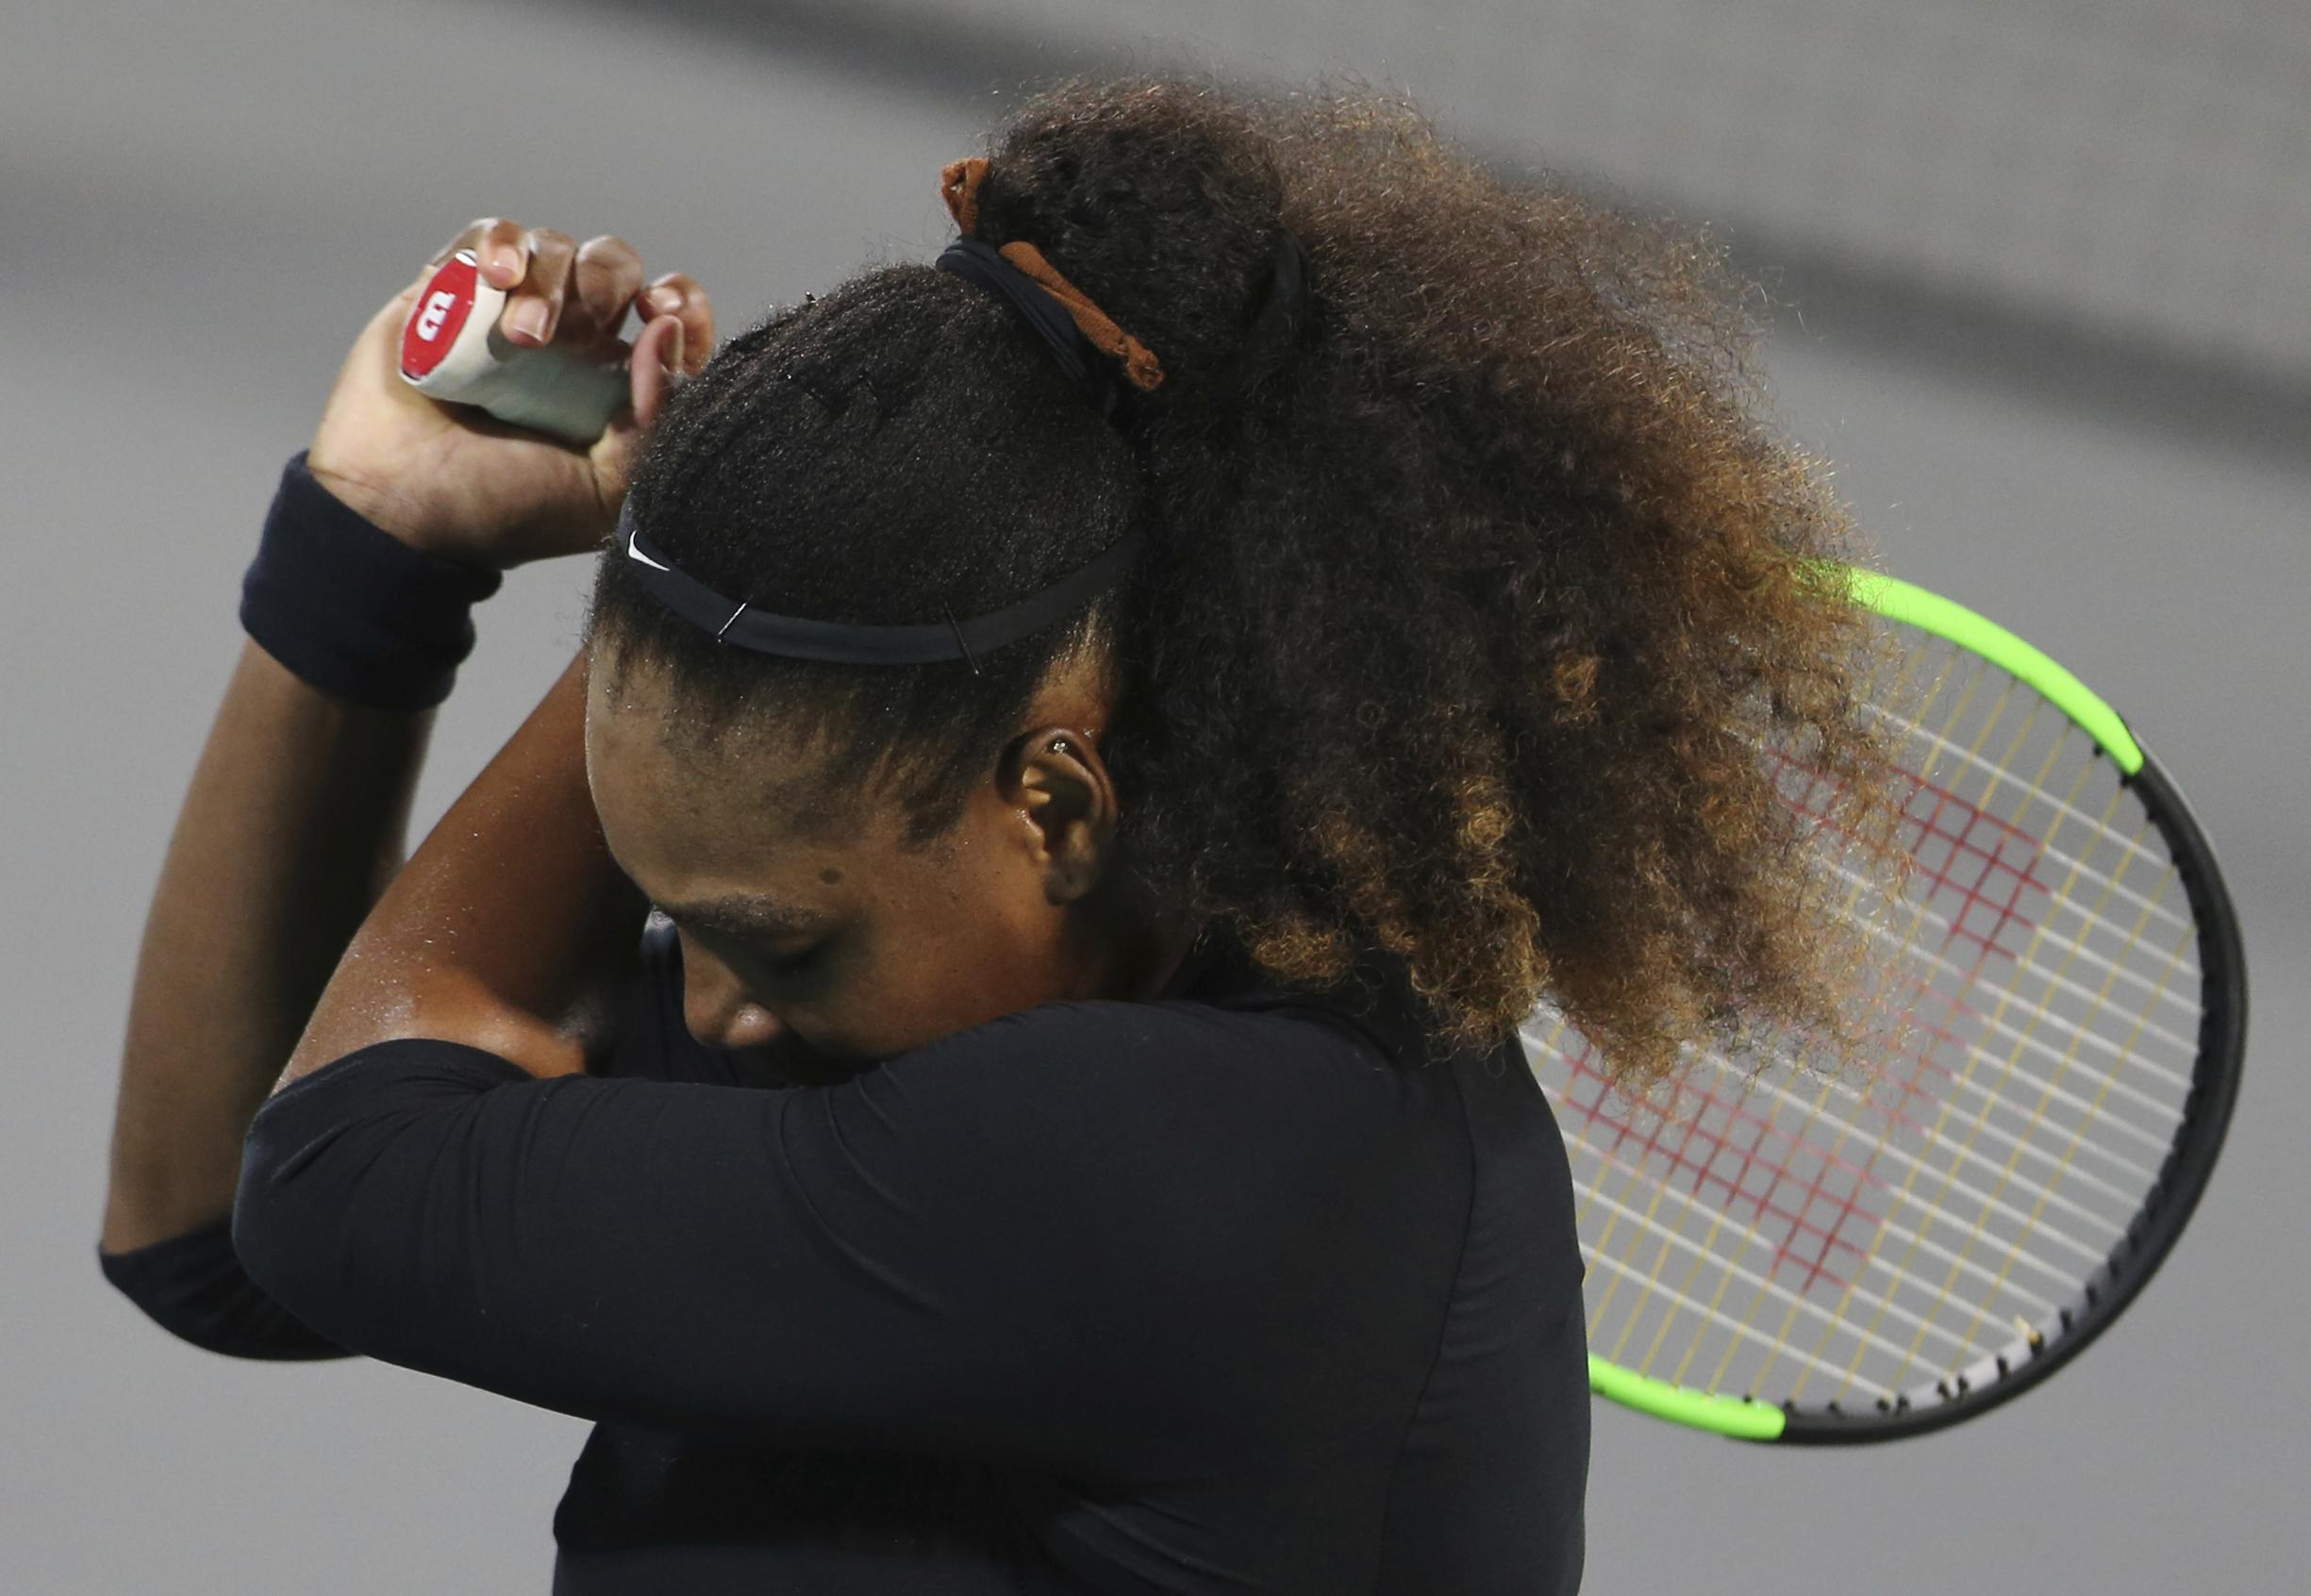 Serena has played just once since giving birth and was frustrated in a defeat to Jelena Ostapenko